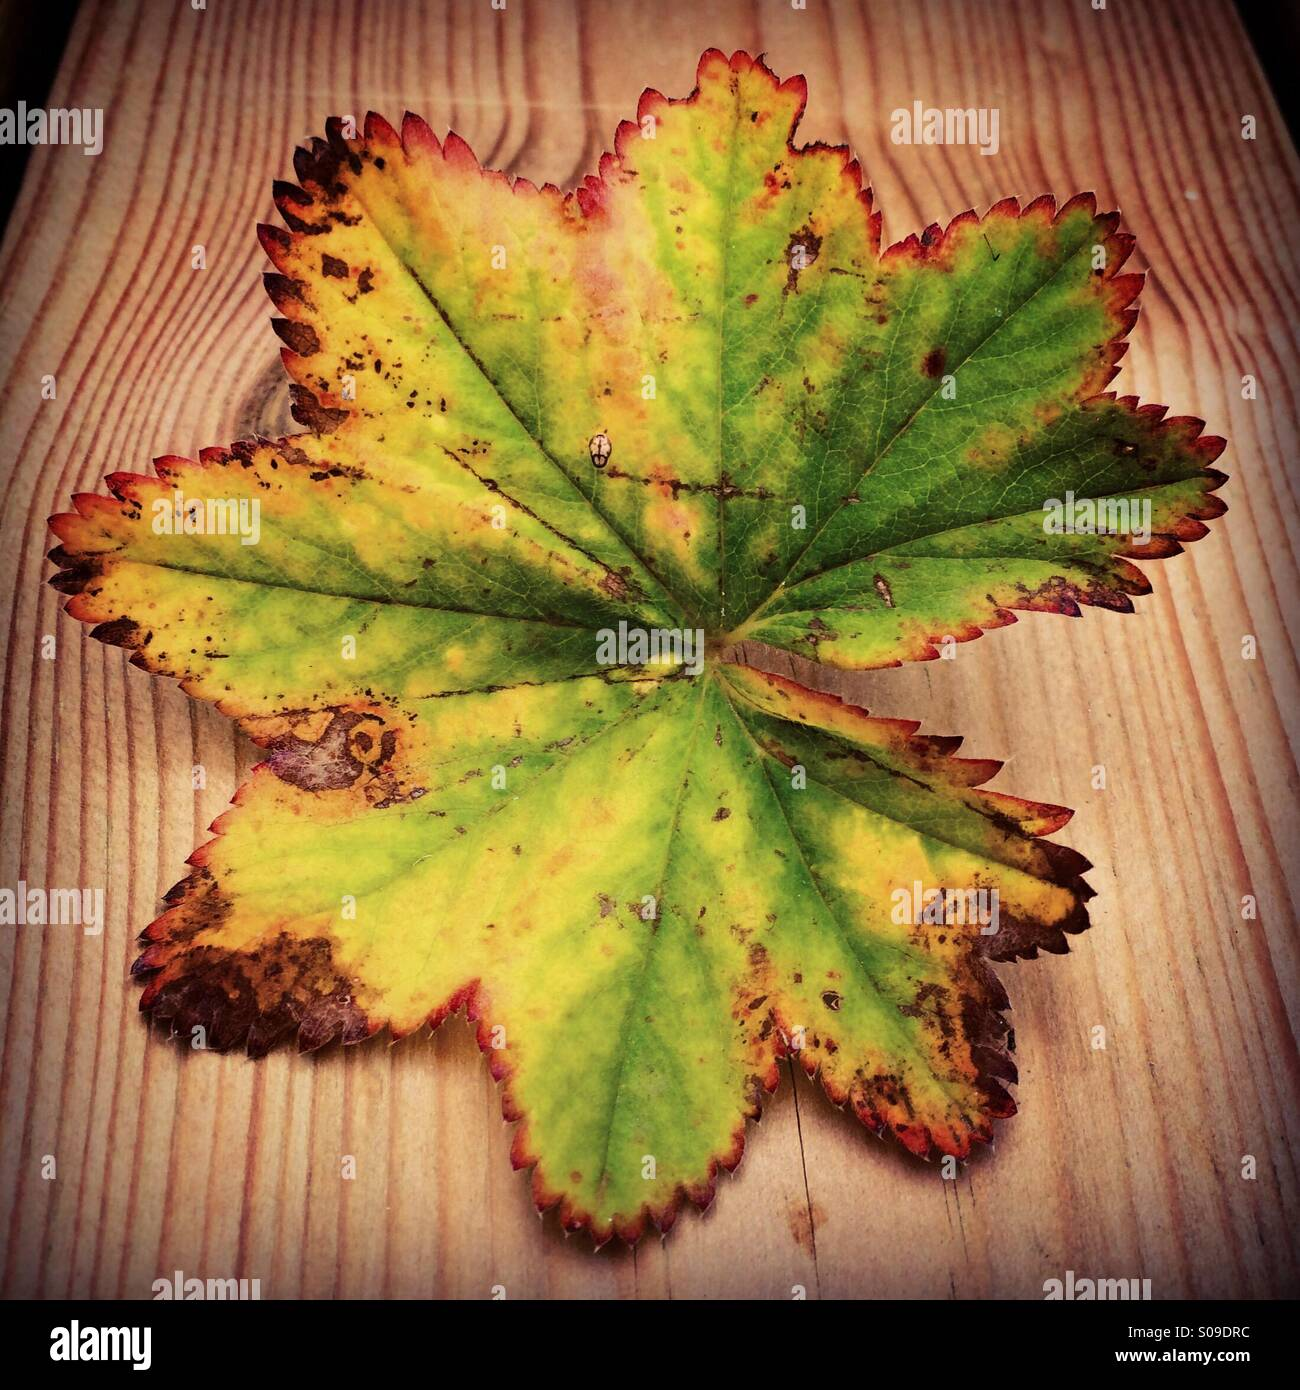 Leaves in the garden - Stock Image